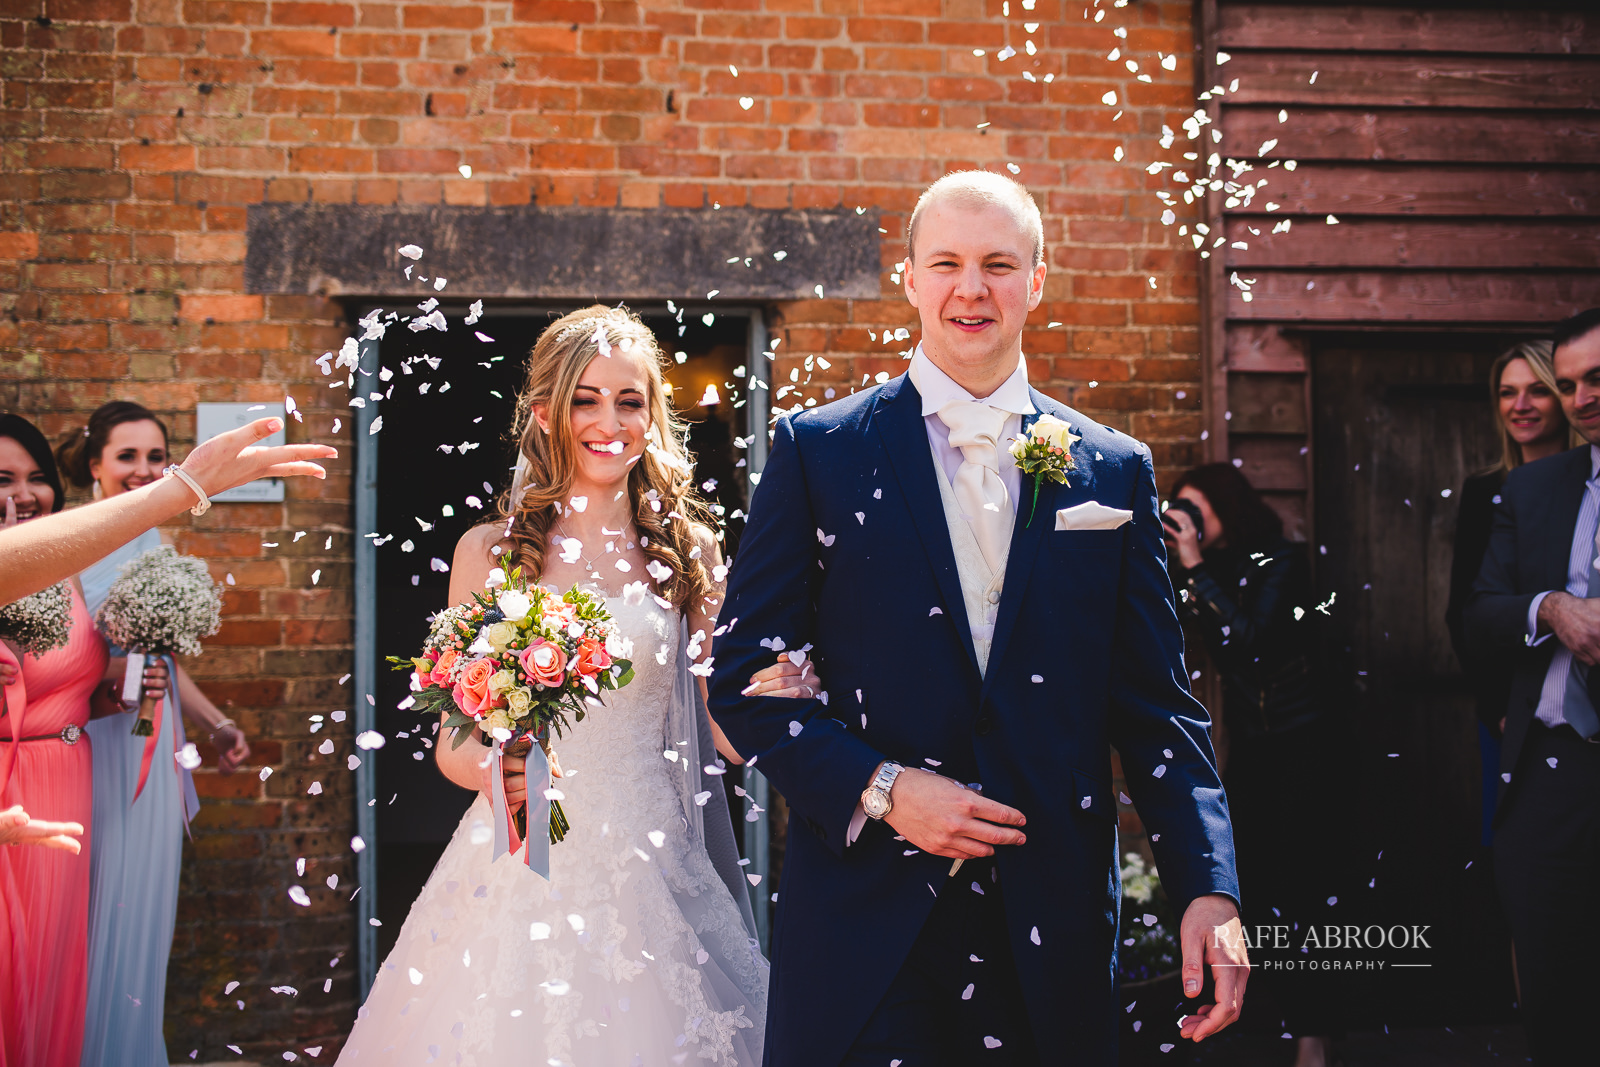 bassmead manor barns wedding st neots cambridgeshire hertfordshire wedding photographer rafe abrook-1432.jpg